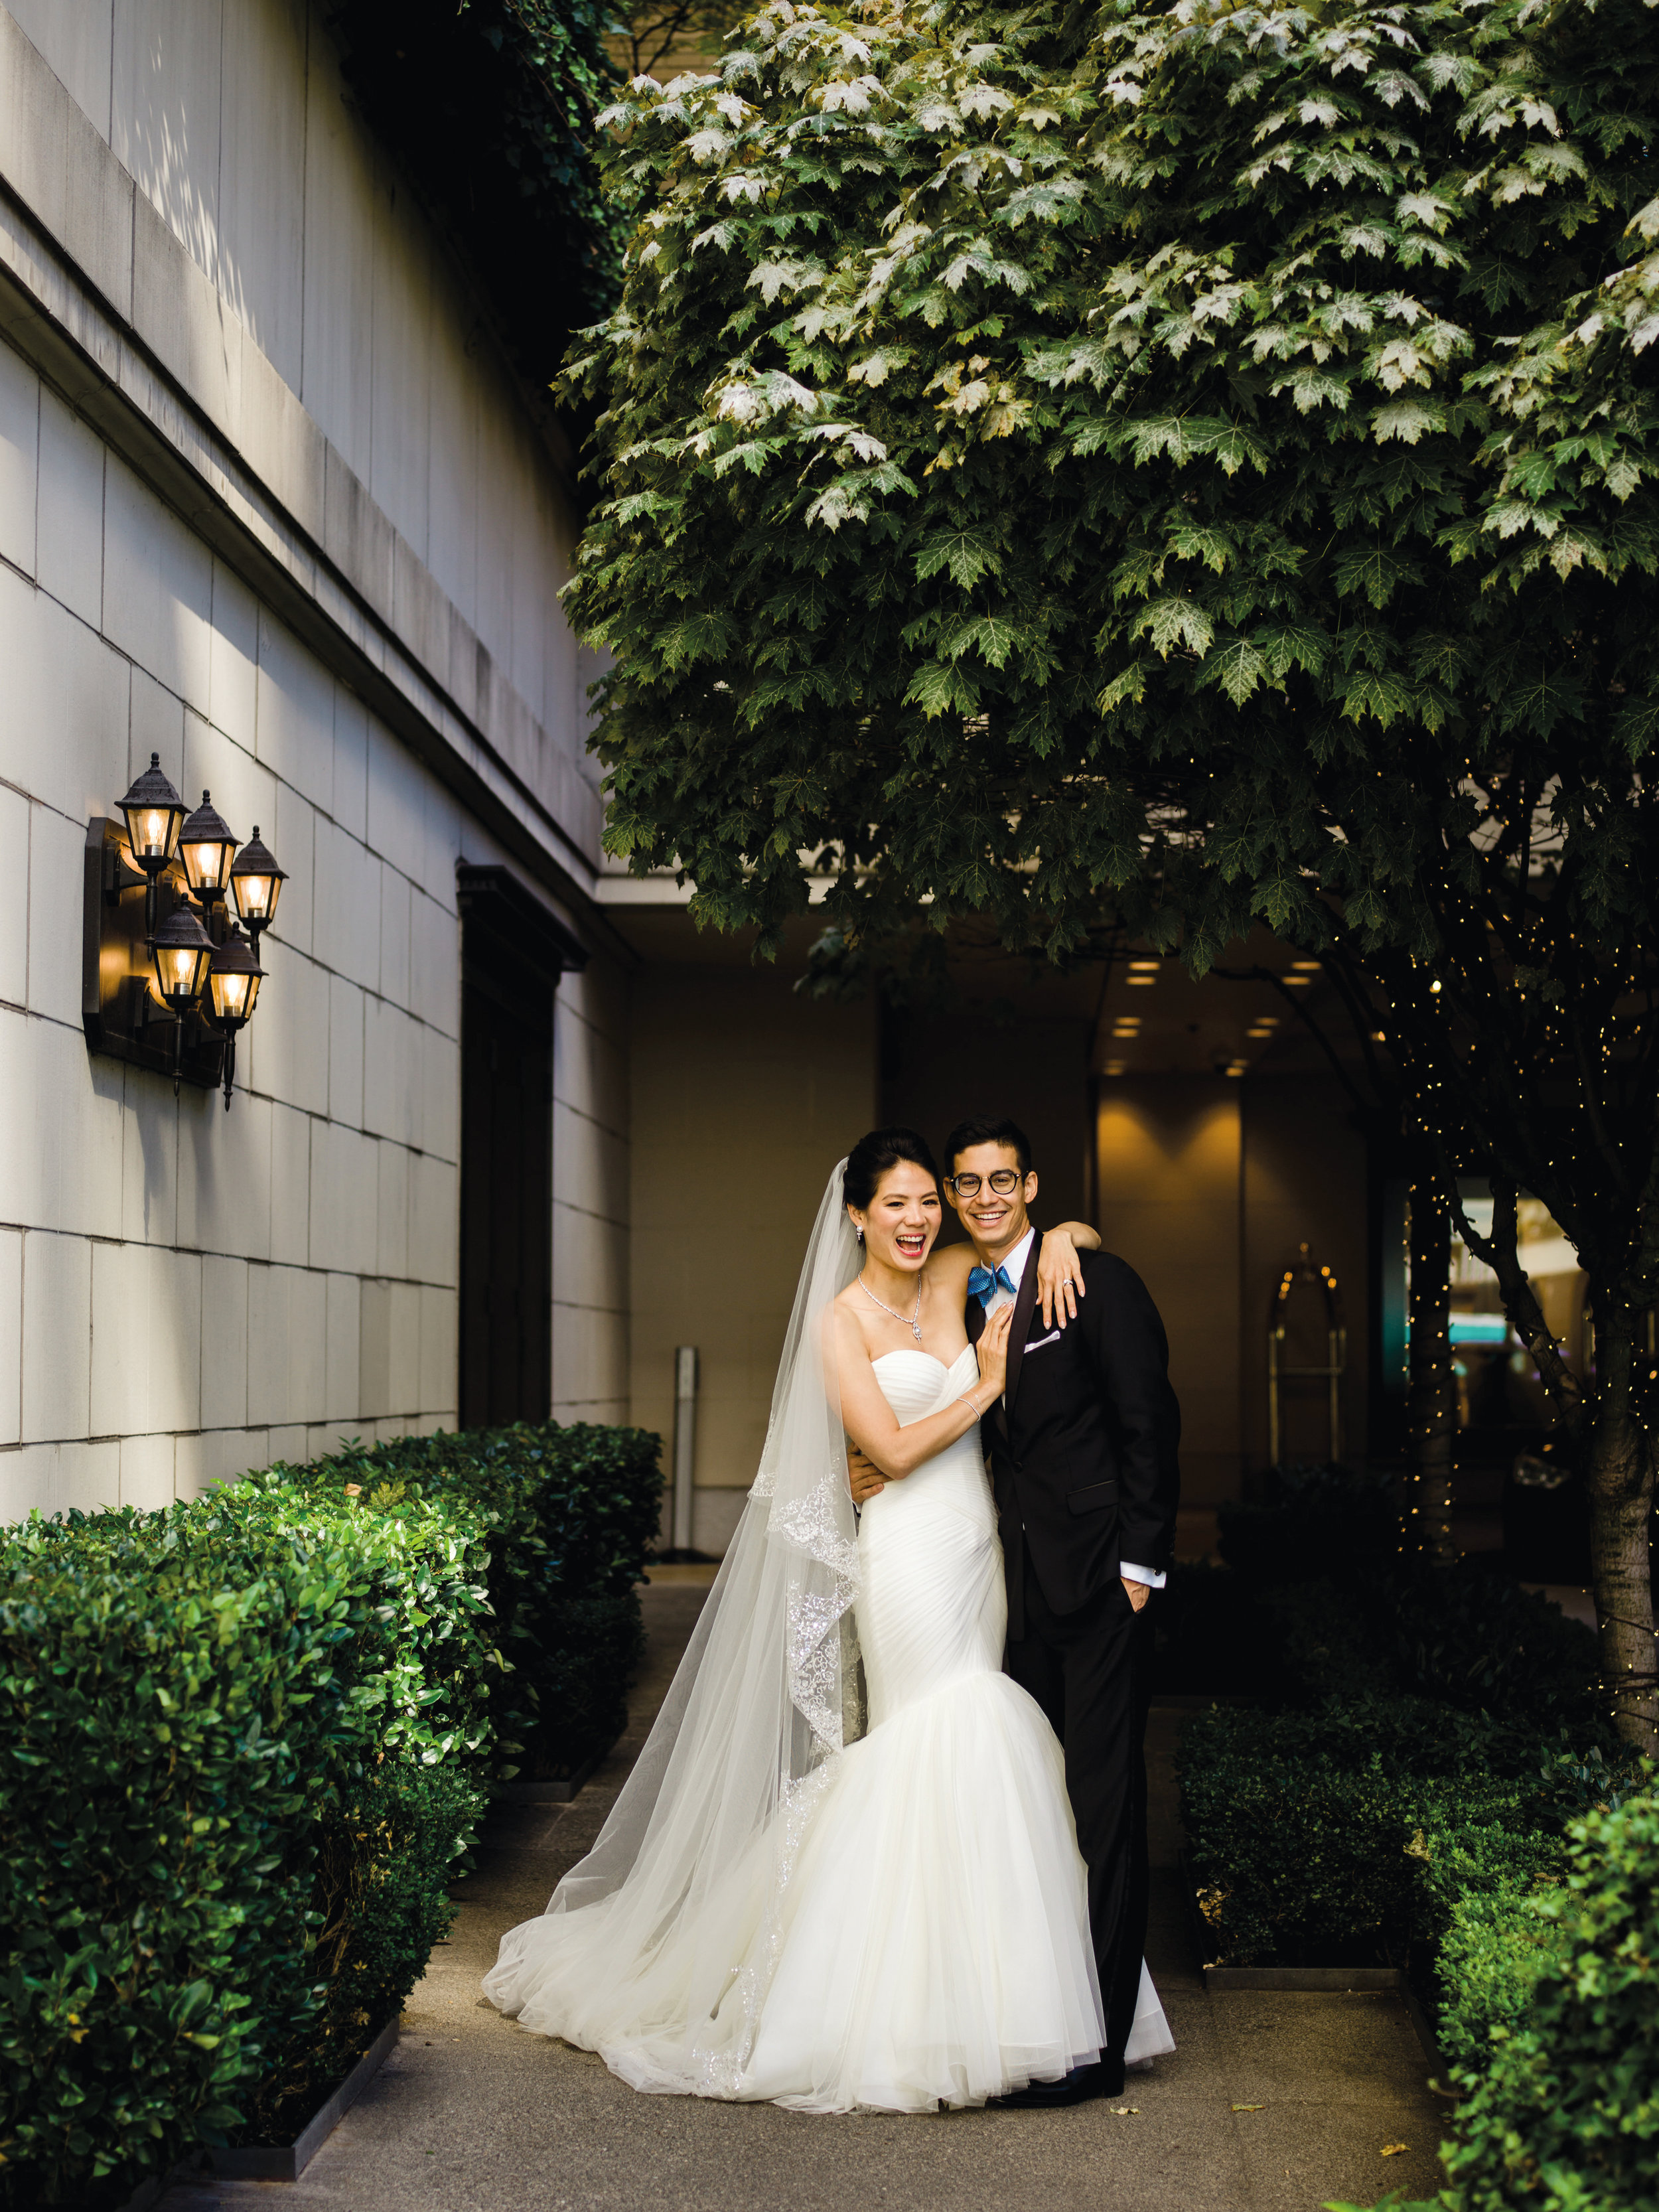 Tiffany Yu '03 married Kevin McFarland in September 2018.